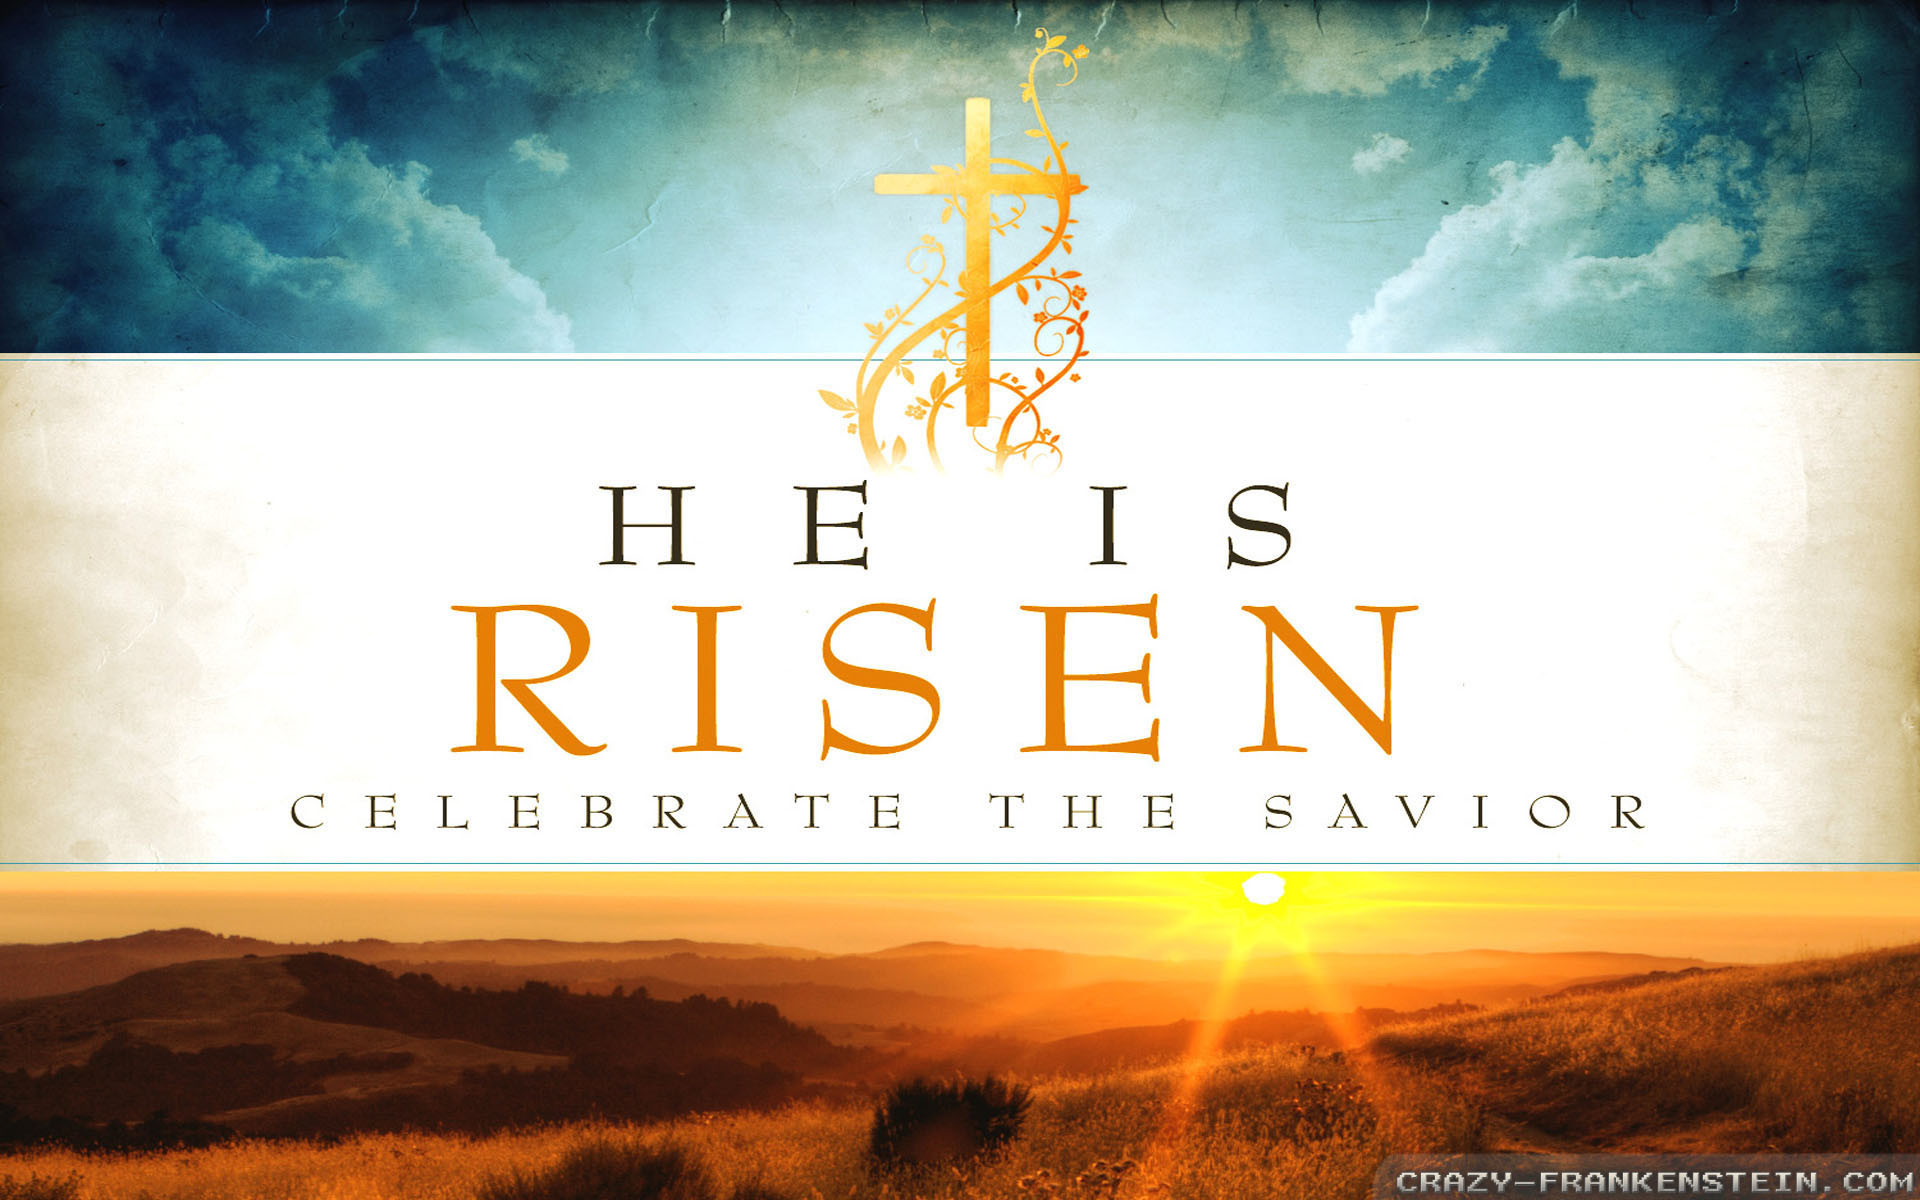 1920x1200  Wallpaper: He is risen Easter Sunday wallpapers. Resolution:  1024x768 | 1280x1024 | 1600x1200. Widescreen Res: 1440x900 | 1680x1050 |